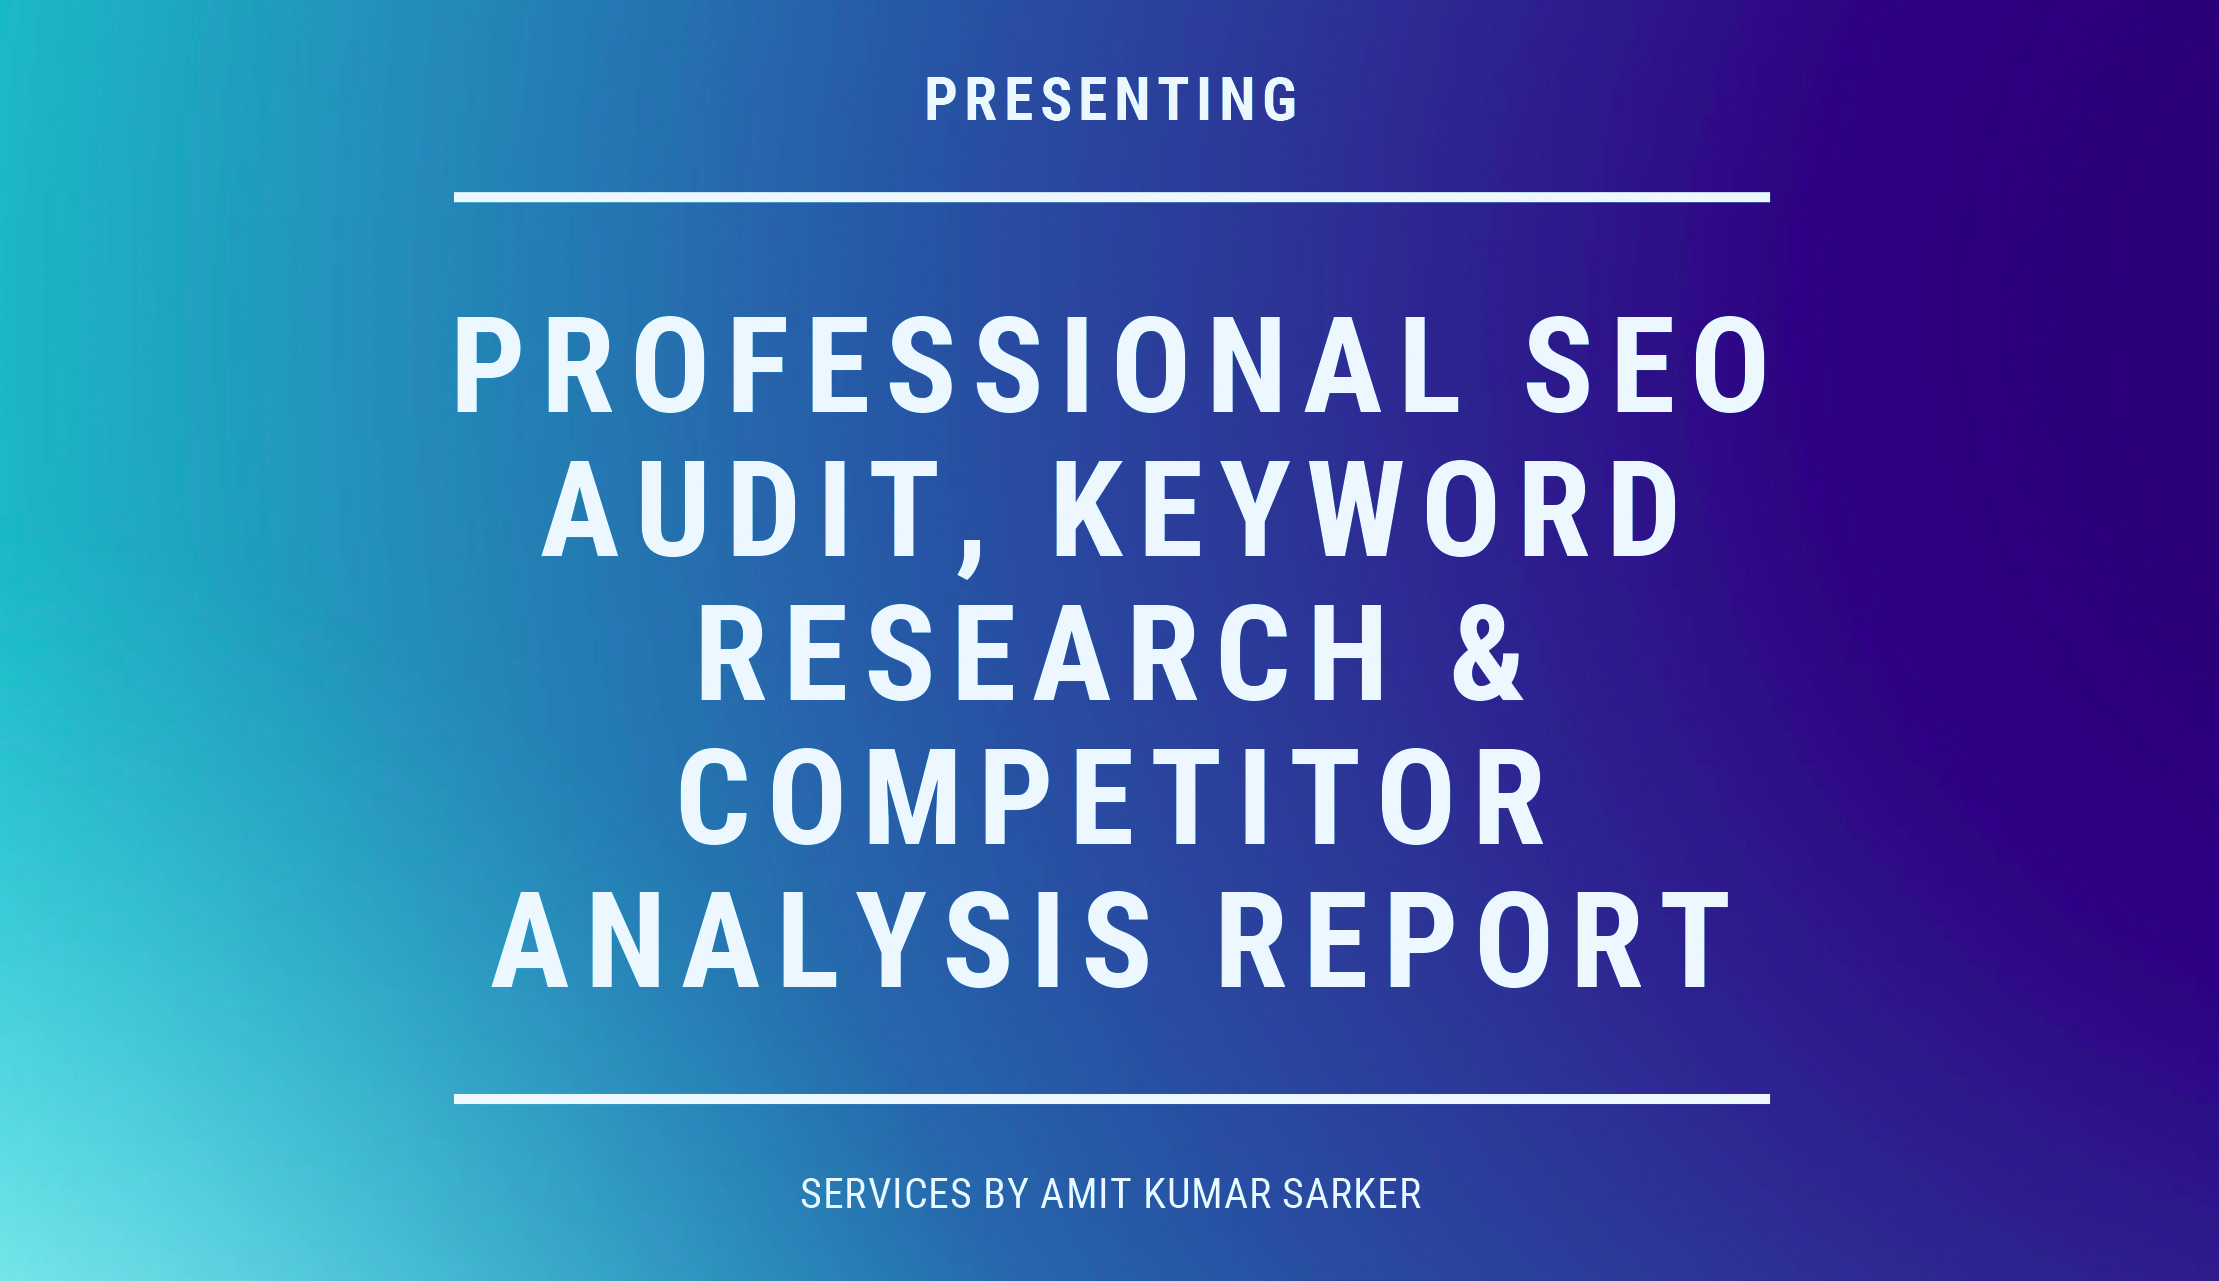 Professional SEO Audit,  Keyword Research & Competitor Analysis Report